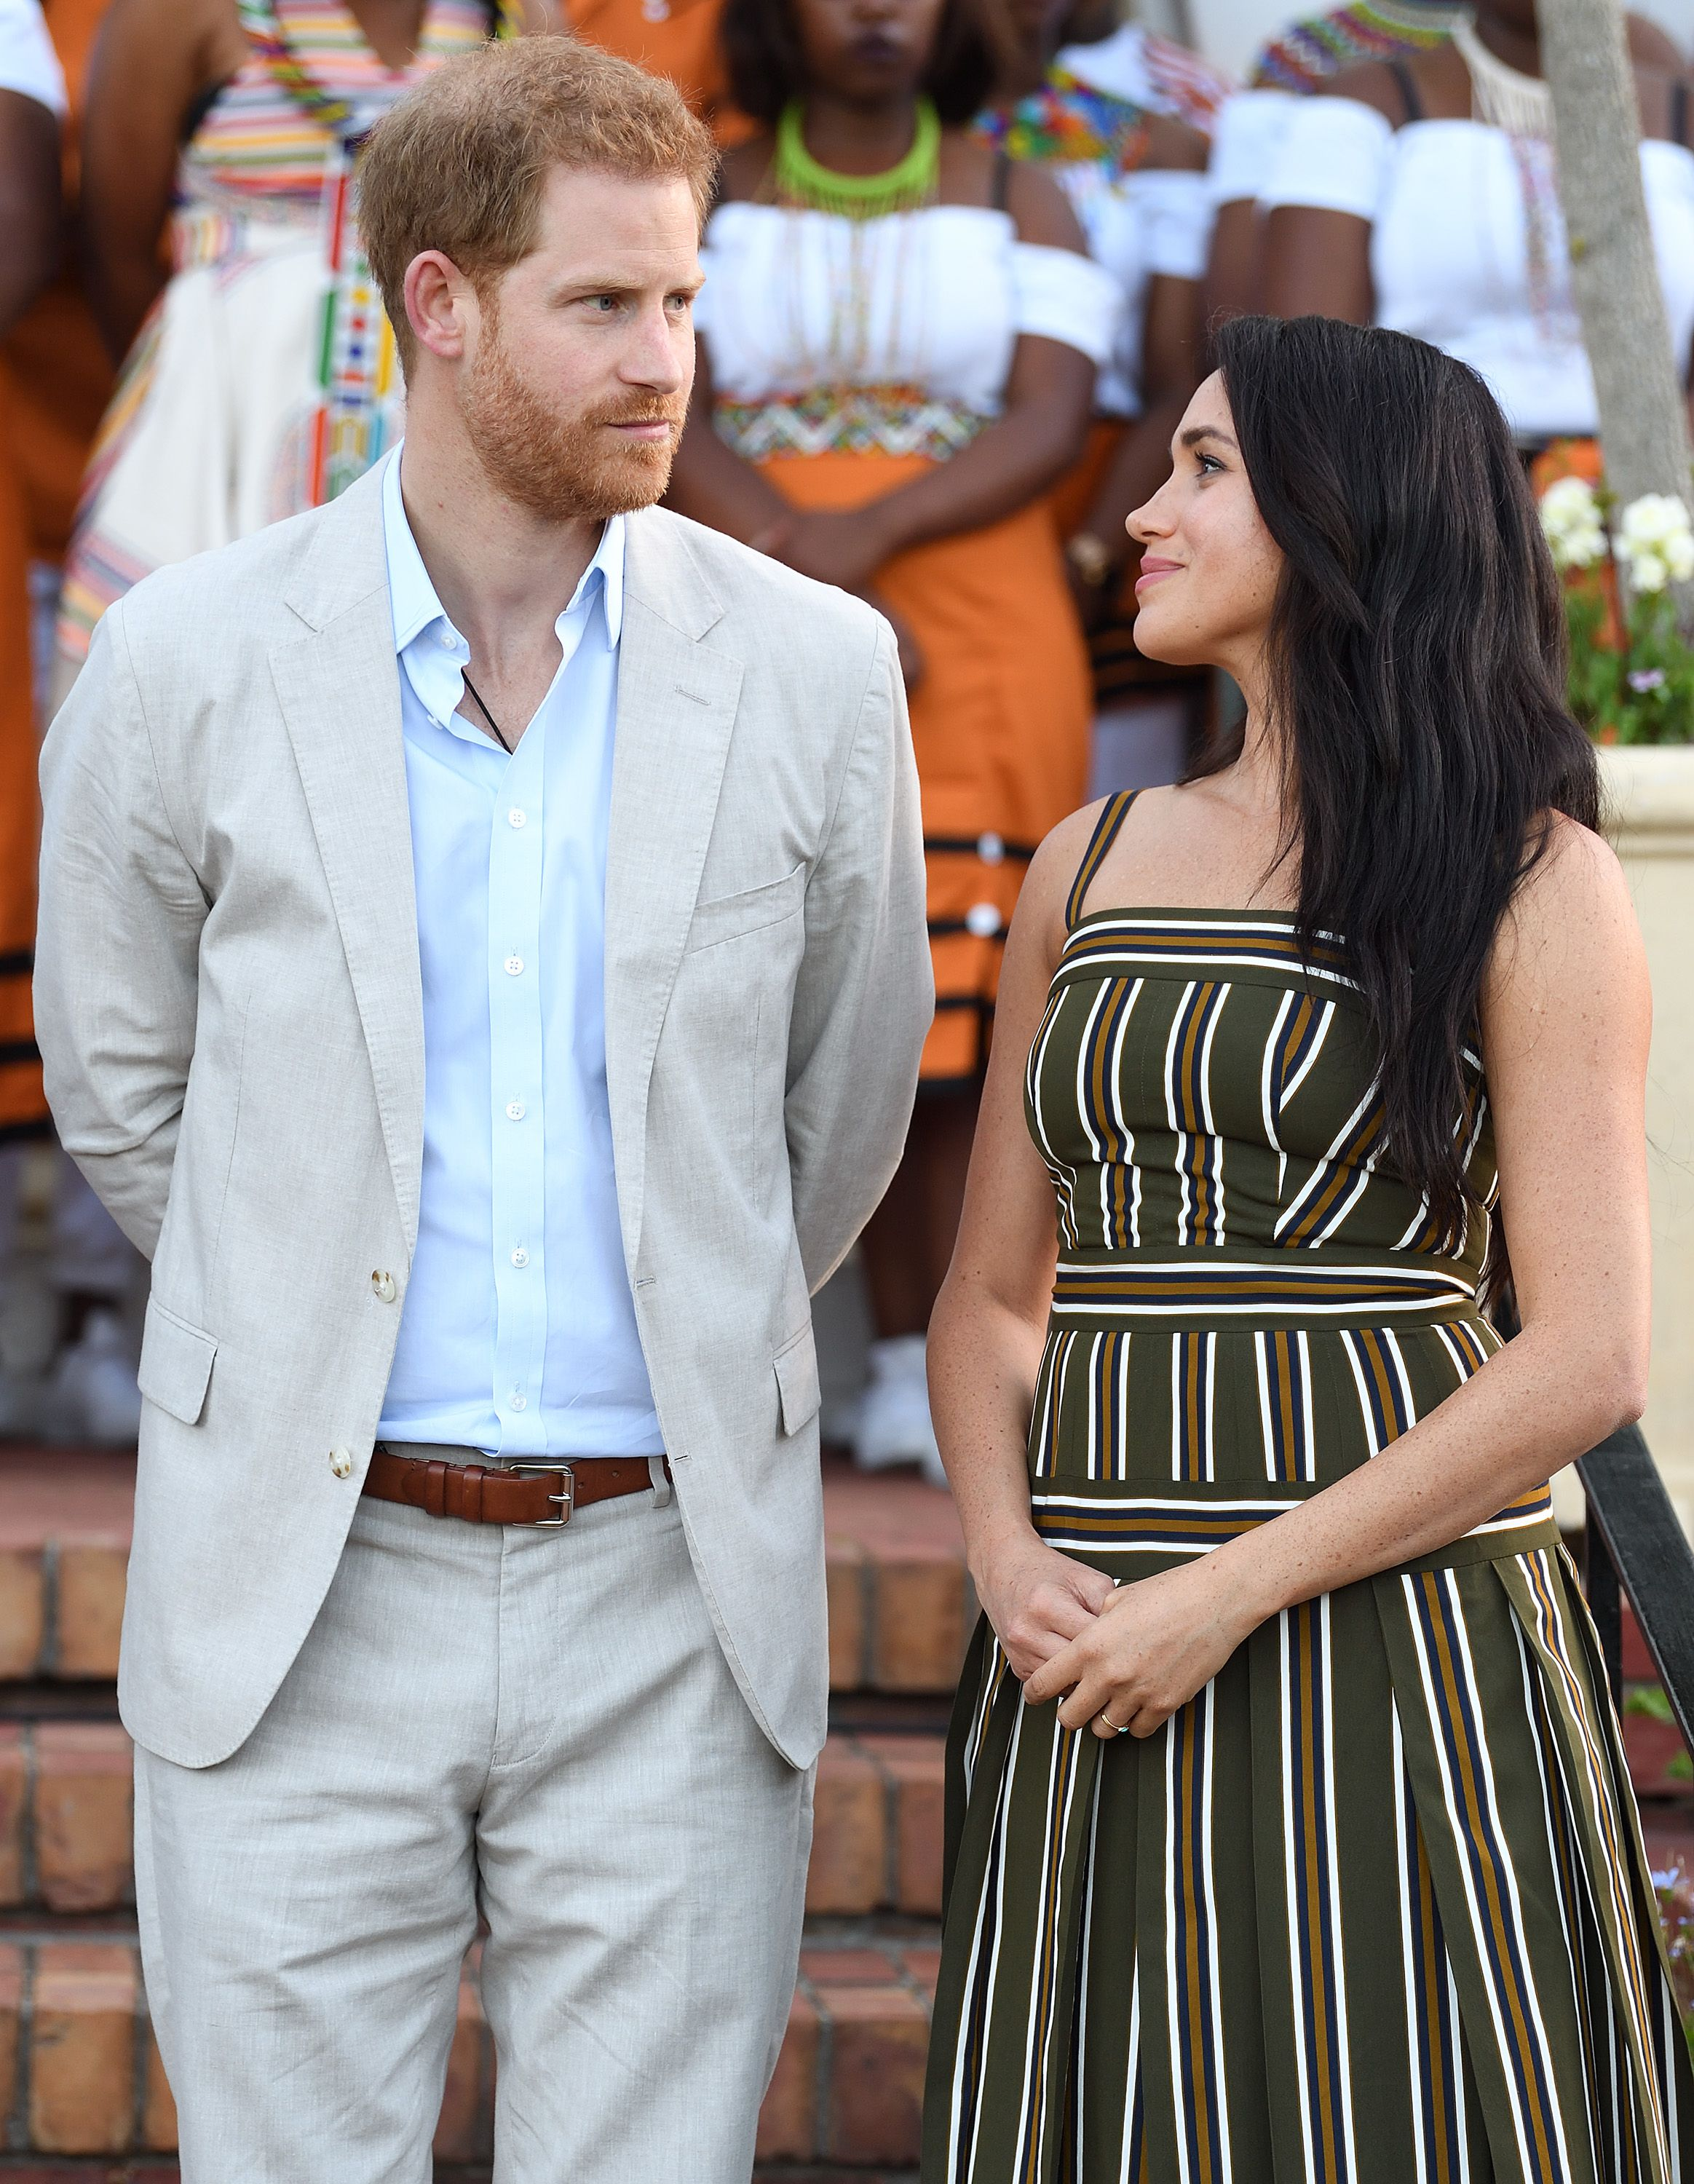 The Duke of Sussex has launched legal proceedings against The Sun and The Daily Mirror